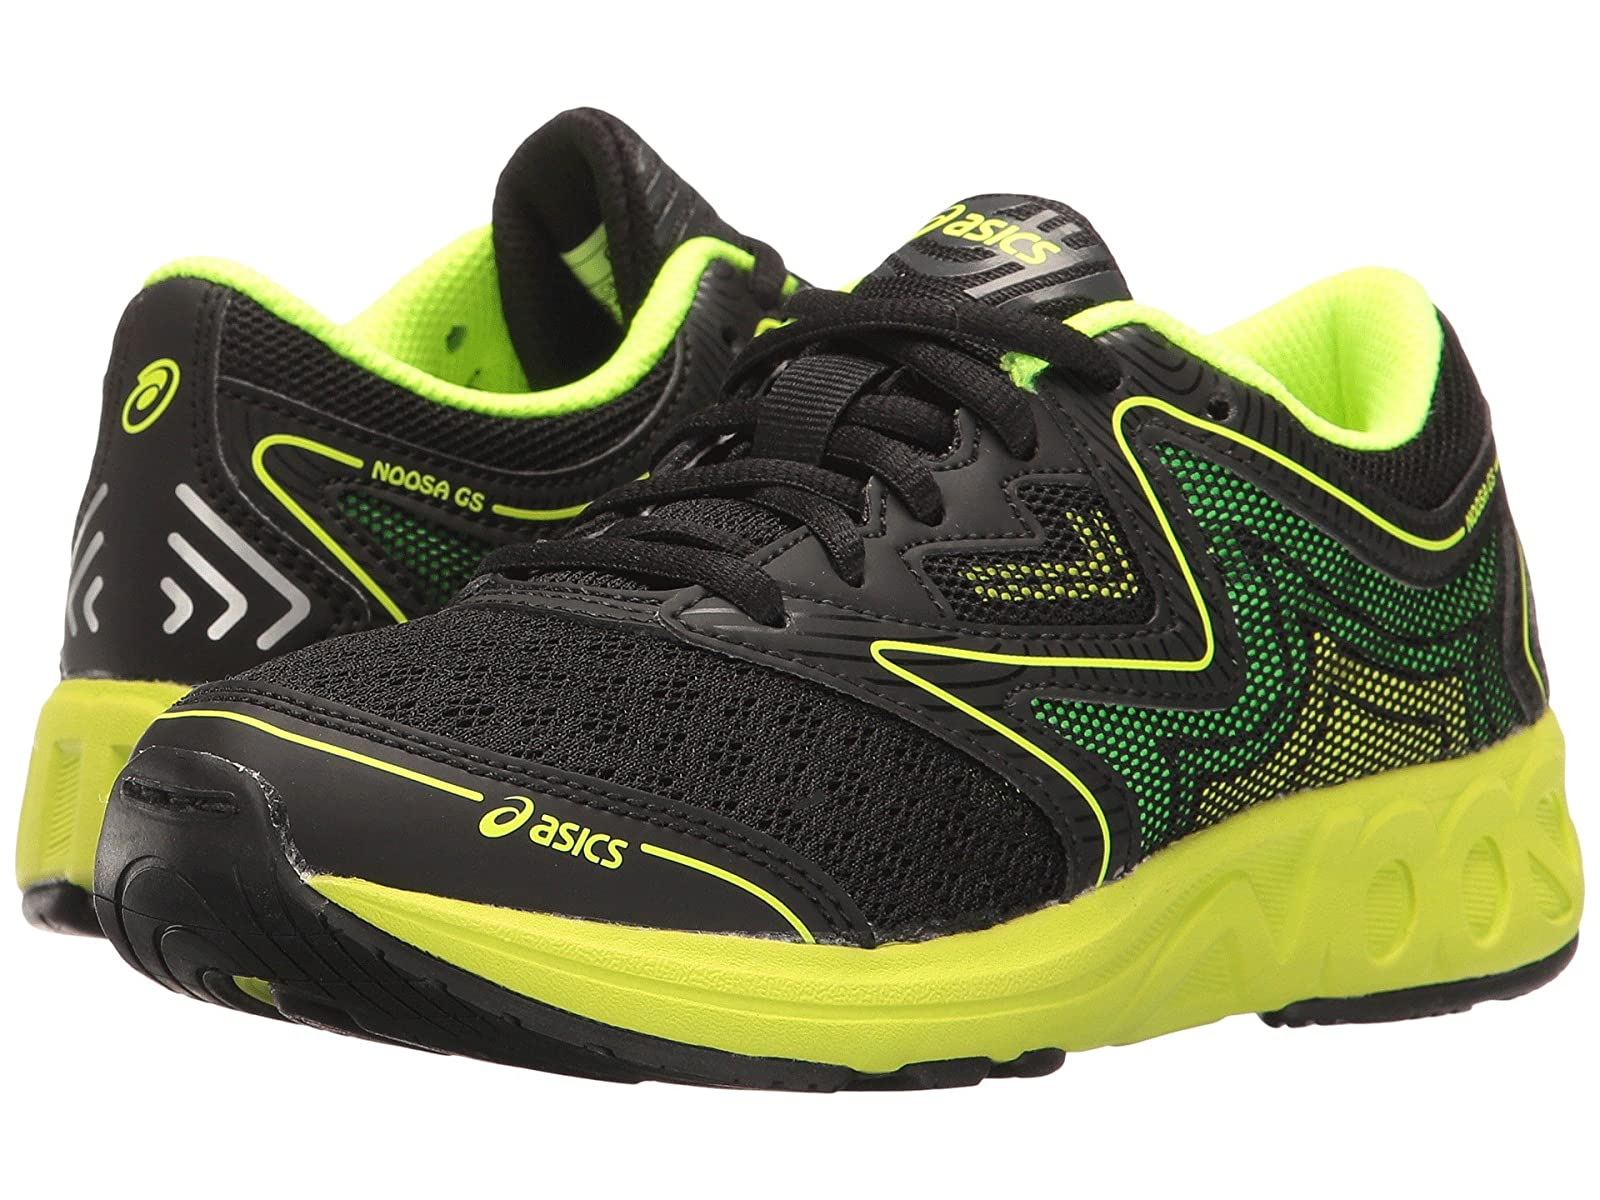 ASICS Kids Noosa GS (Little Kid/Big Kid)Cheap and distinctive eye-catching shoes